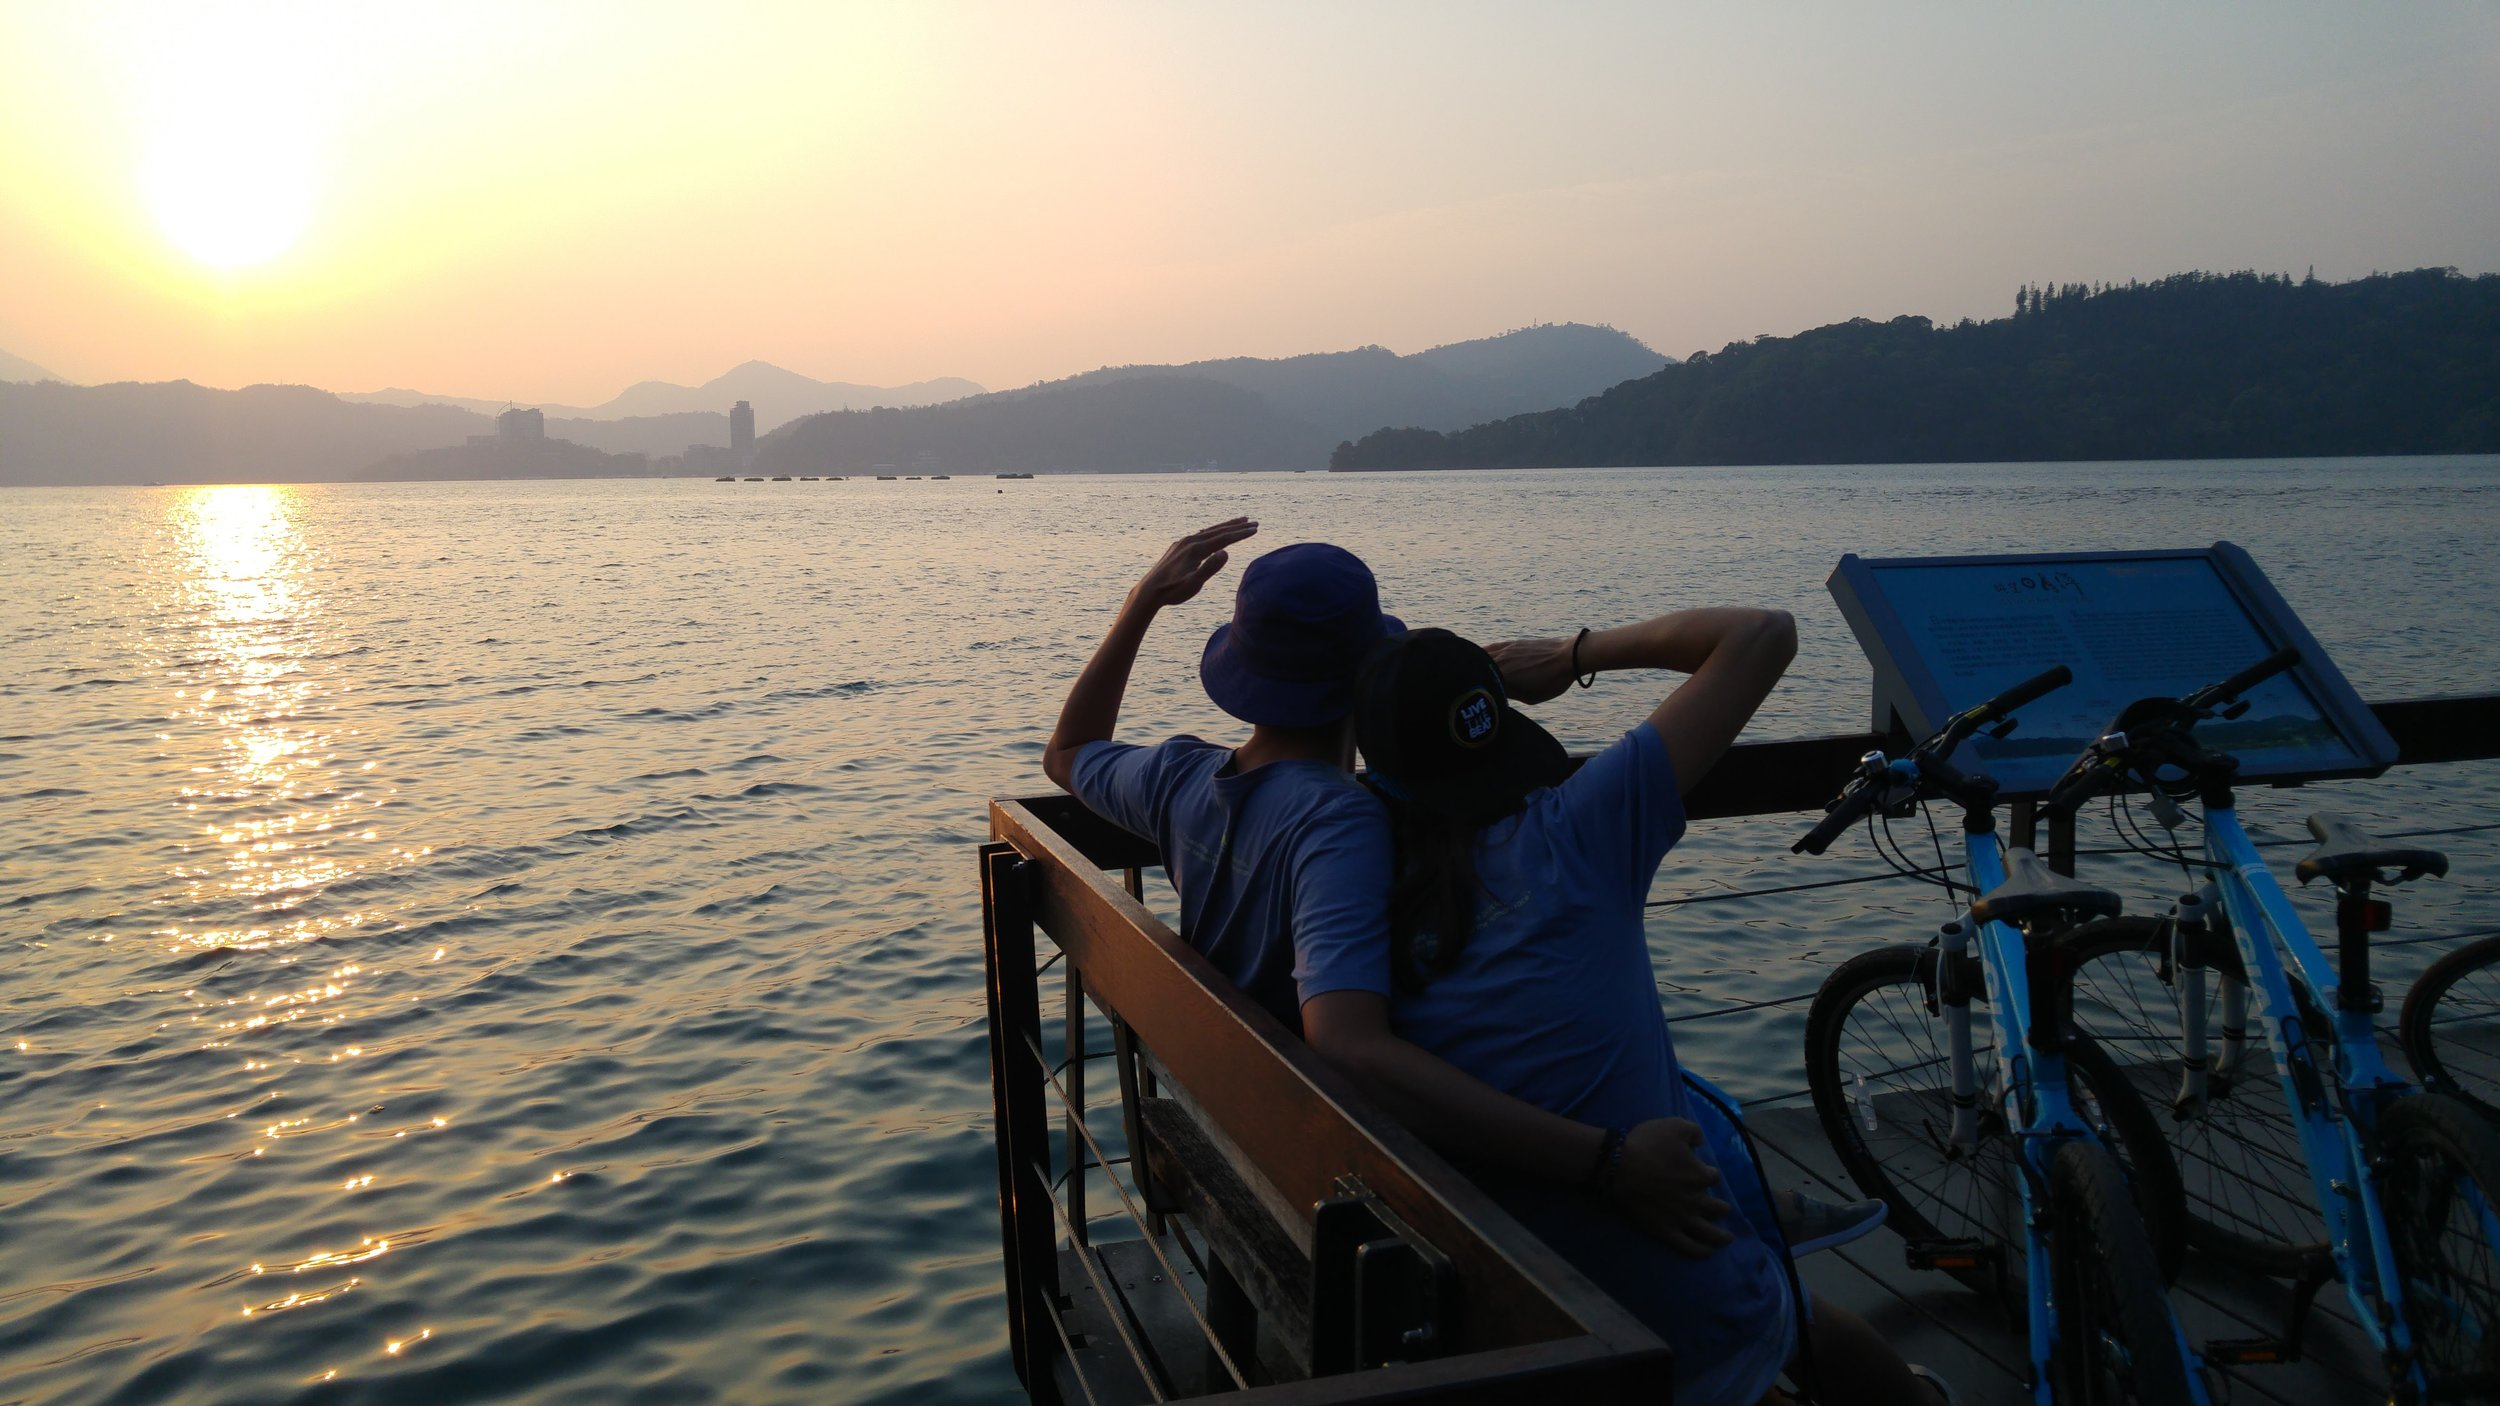 Romantic sunset view of a biking couple in Sun Moon Lake